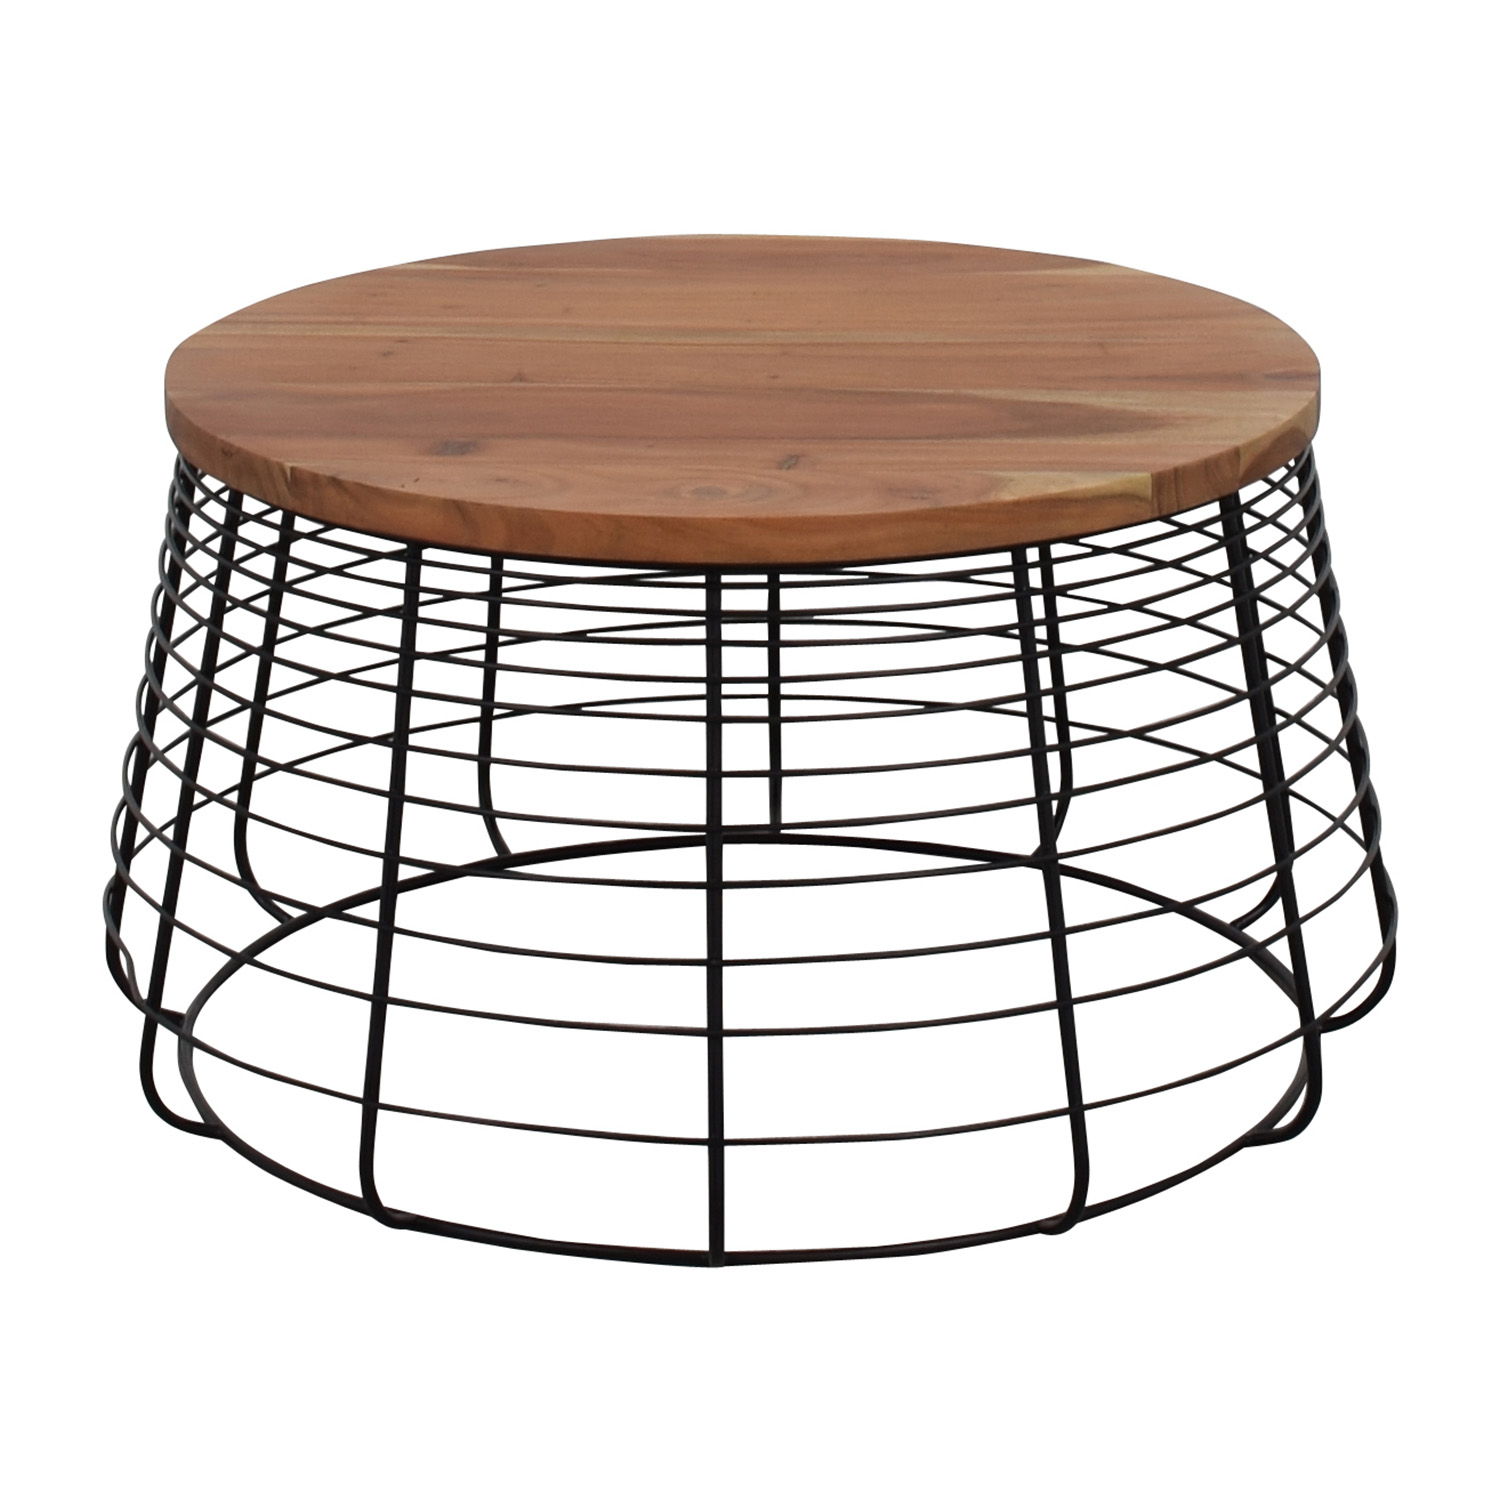 39% OFF - Metal Ring Coffee Table / Tables